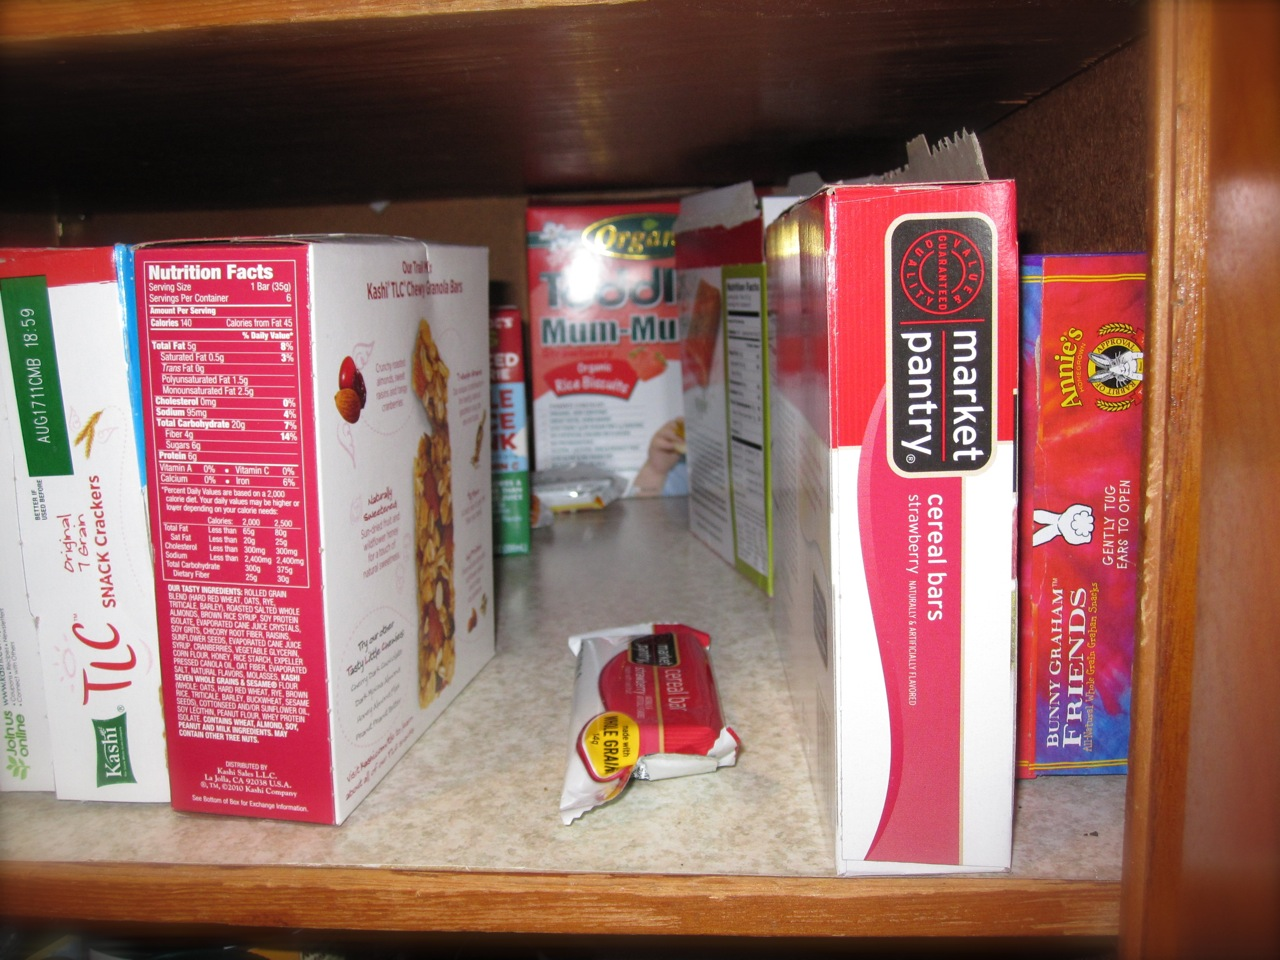 2 Foot Deep Shelves. Who Comes Up With This Nonsense?